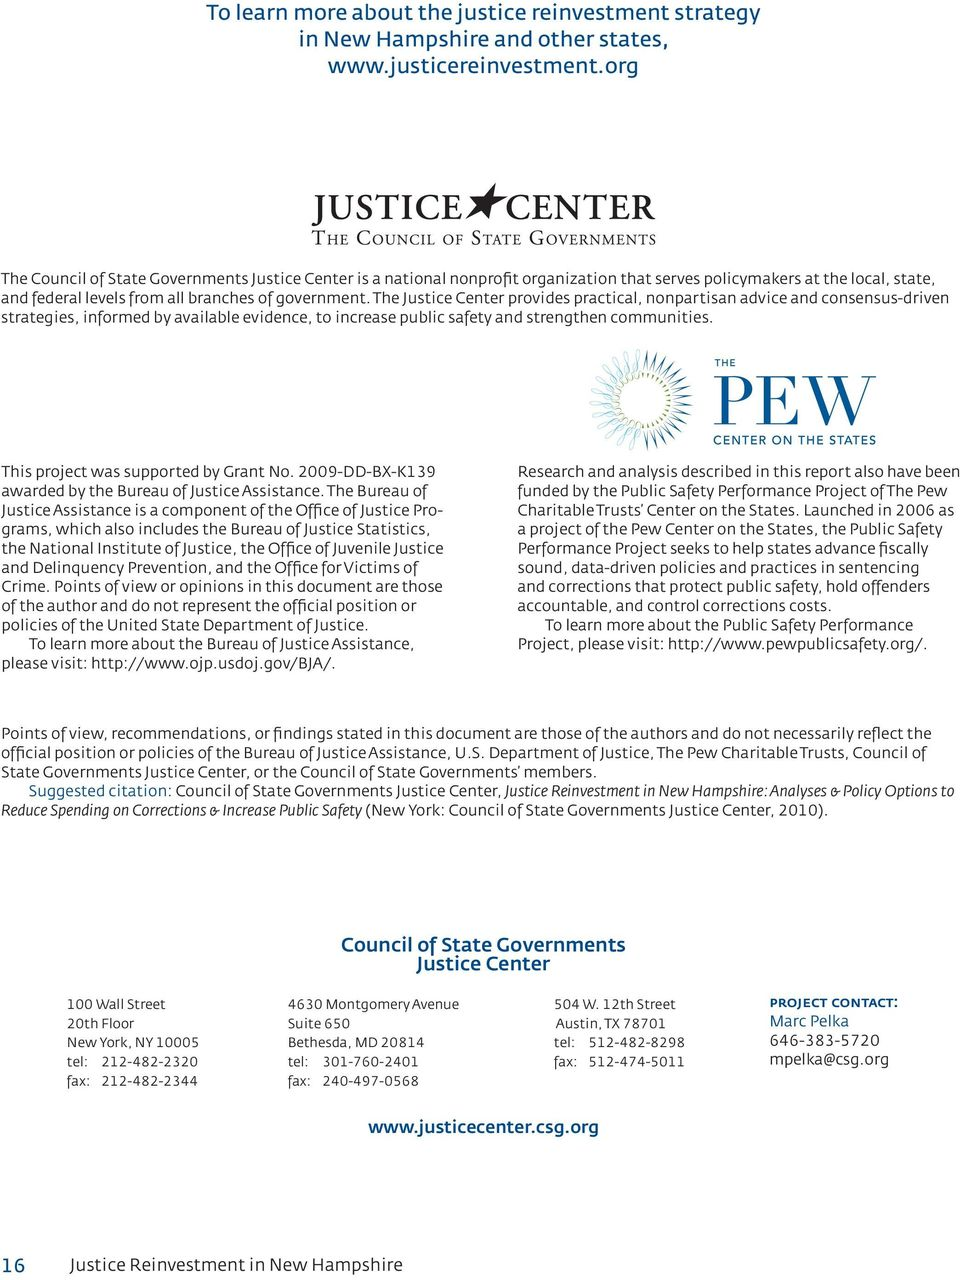 The Justice Center provides practical, nonpartisan advice and consensus-driven strategies, informed by available evidence, to increase public safety and strengthen communities.